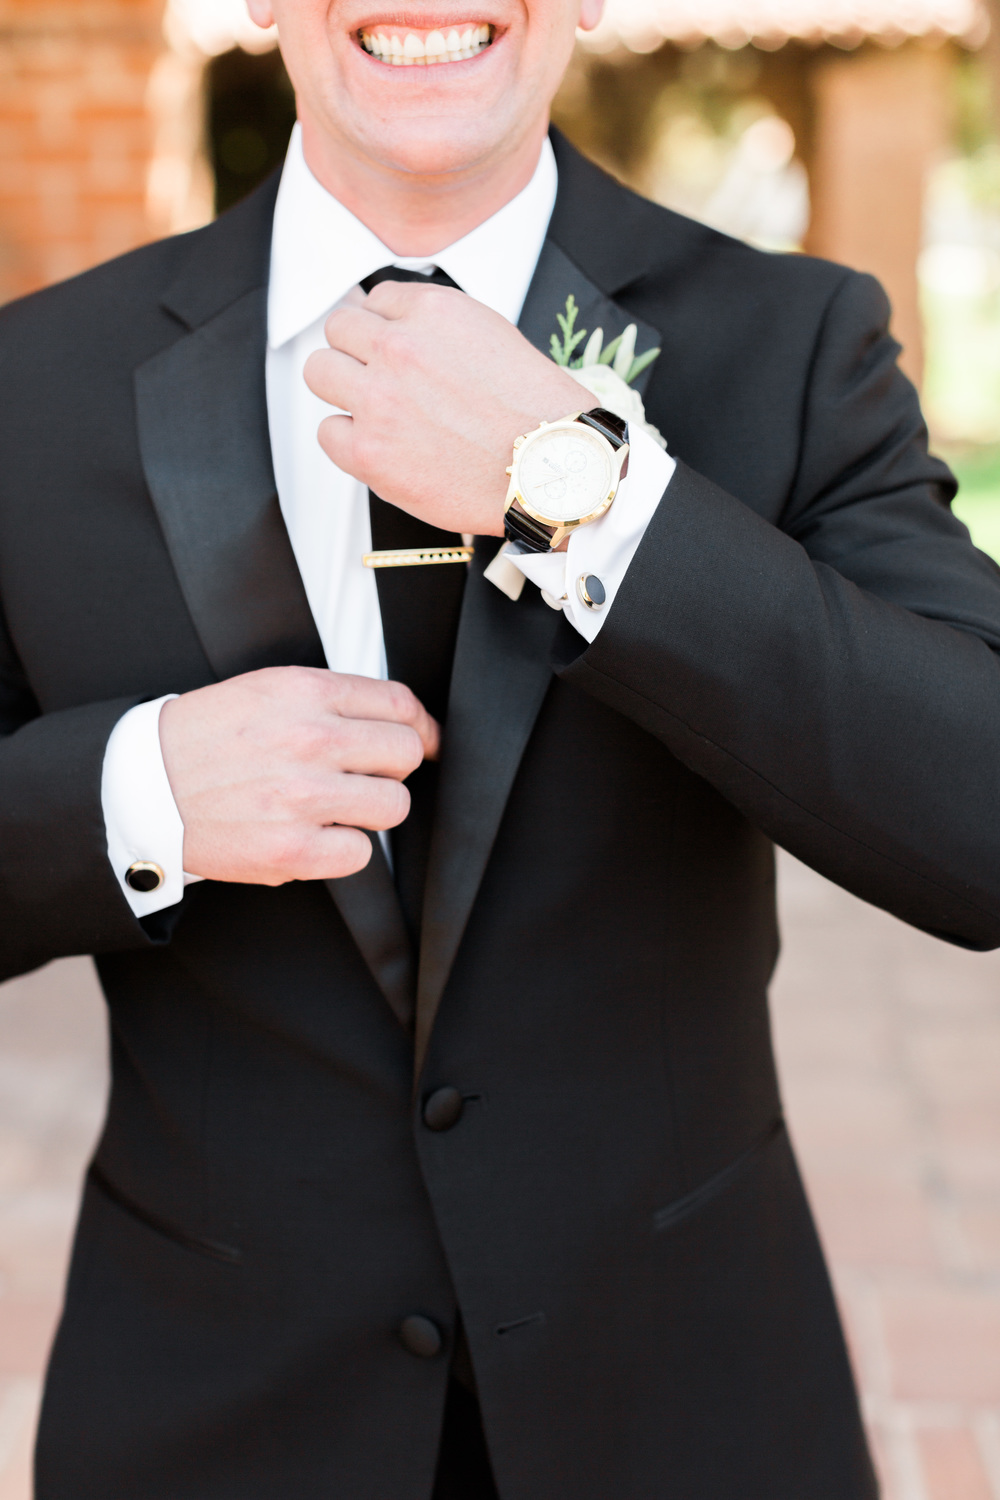 Groom smiling in back tux, straightening tie